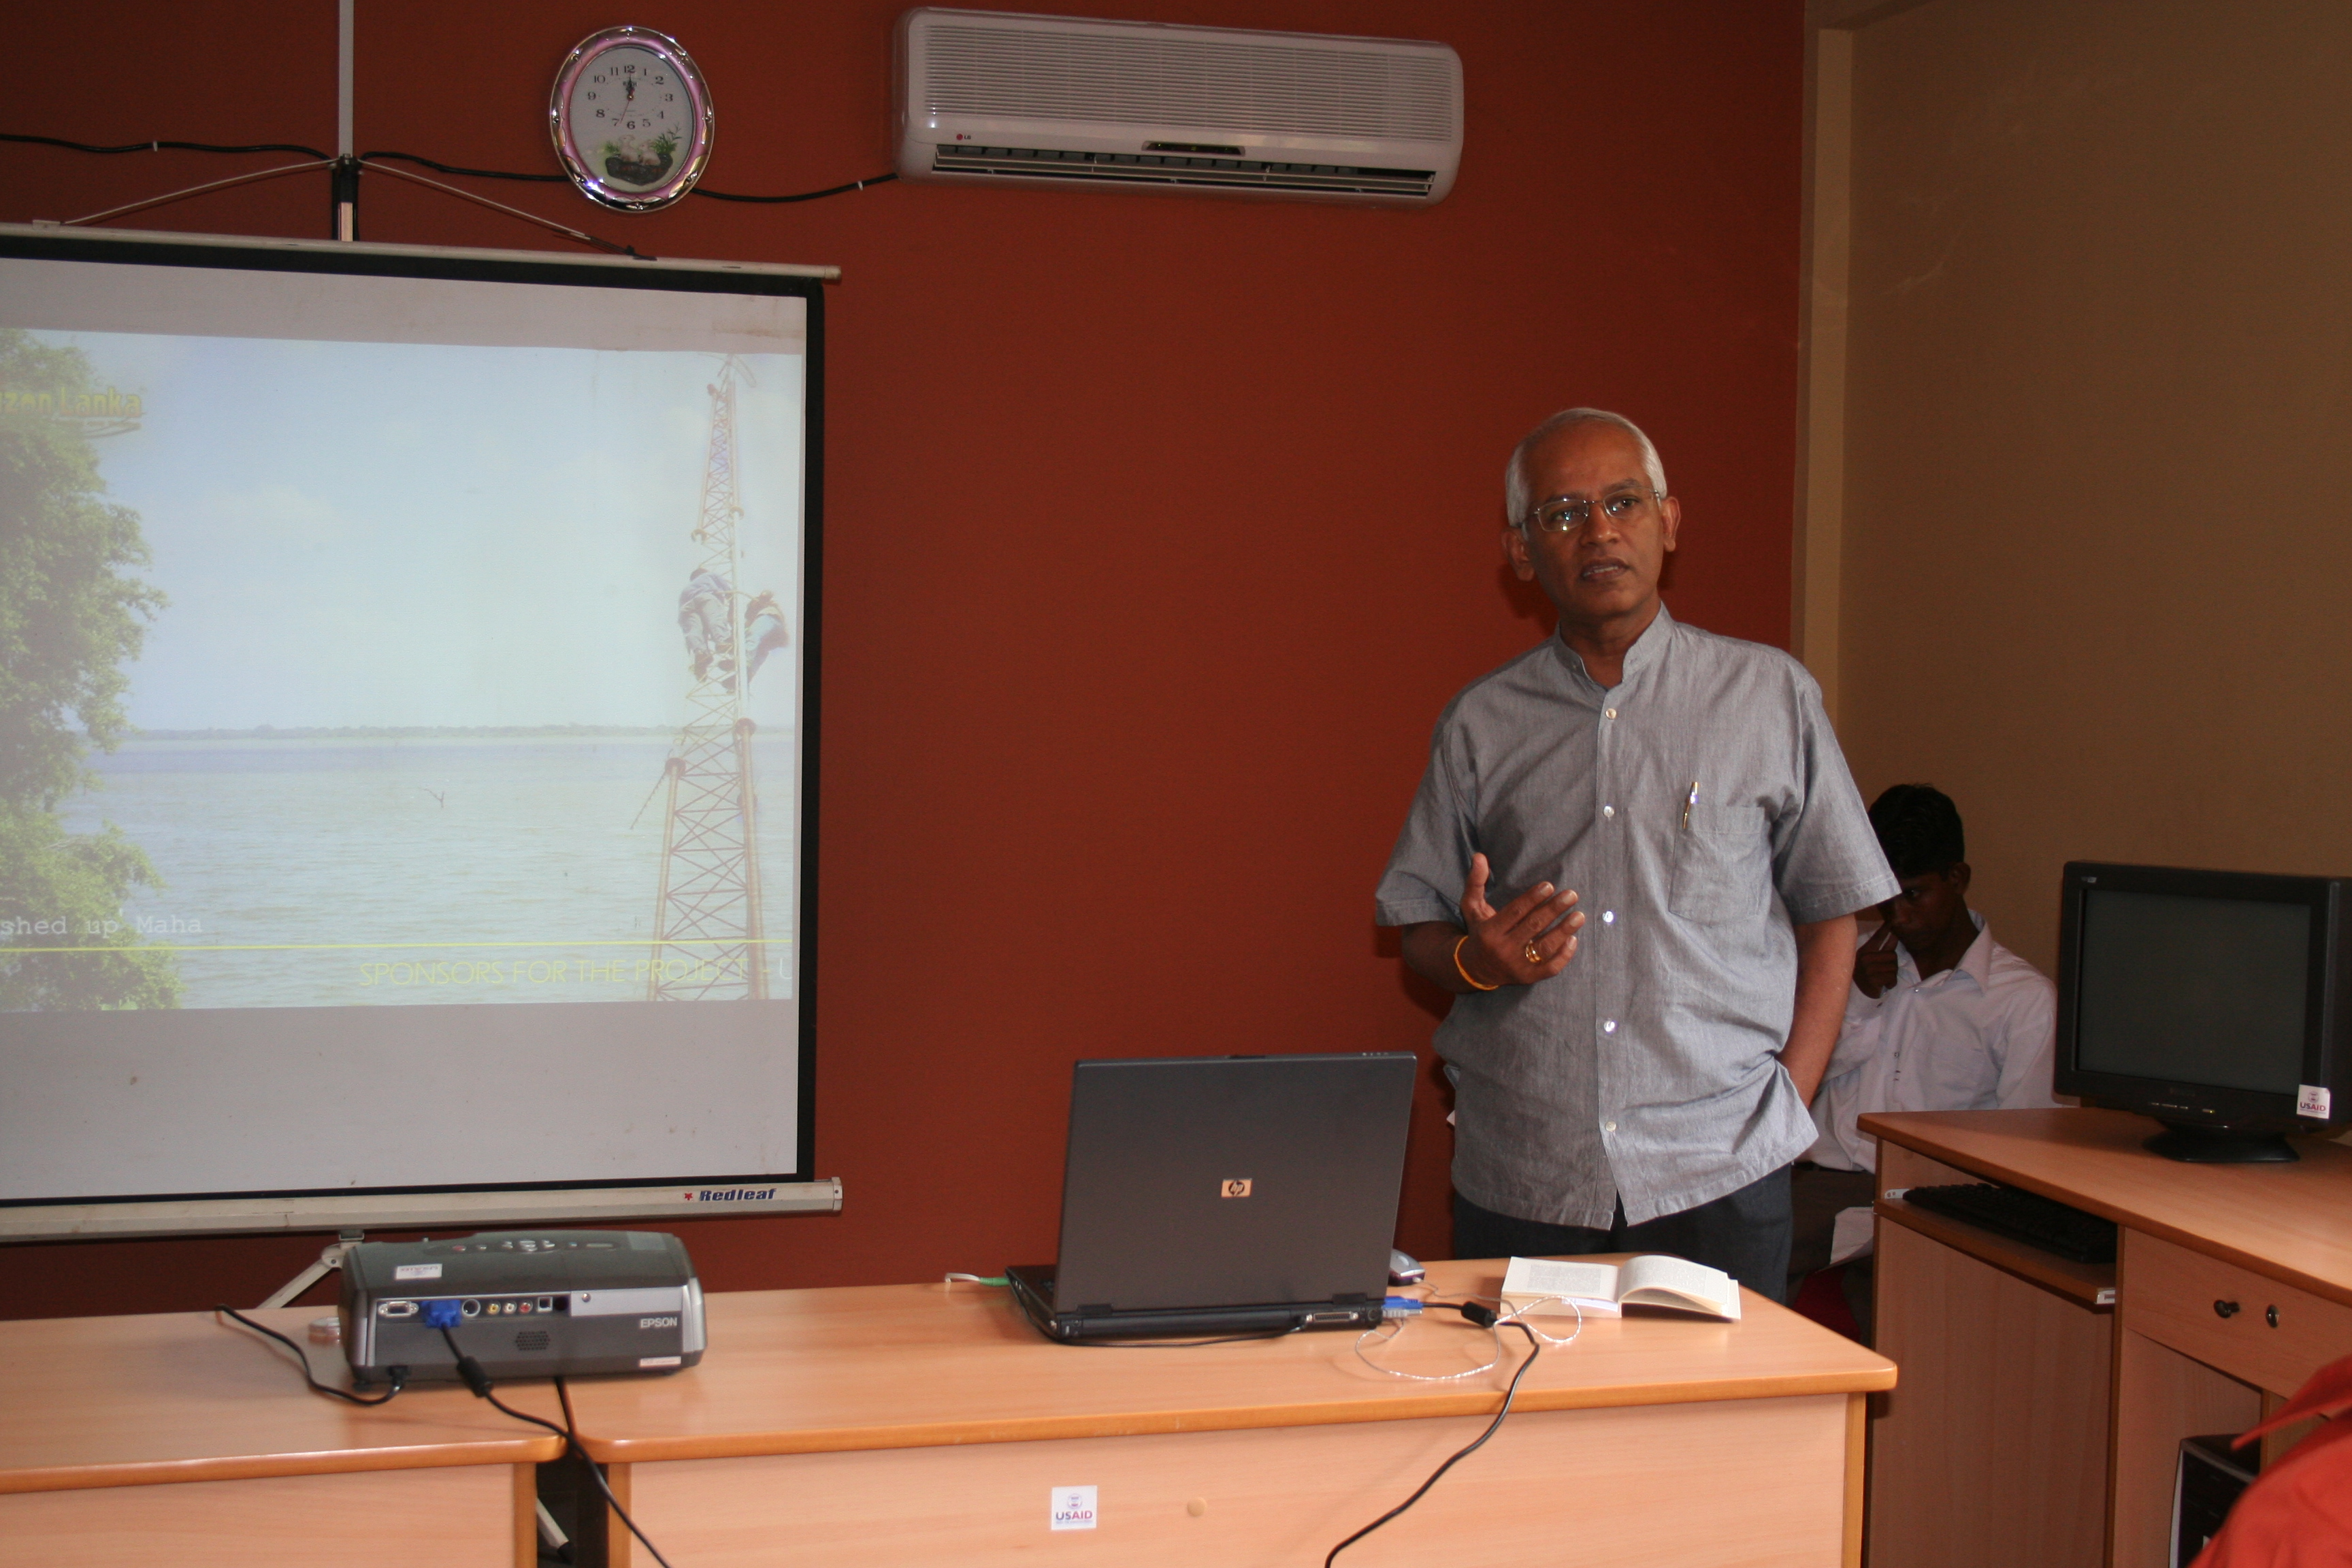 Mr. Lalith Weeratunga speaking at the mesh Wi-Fi network launnch